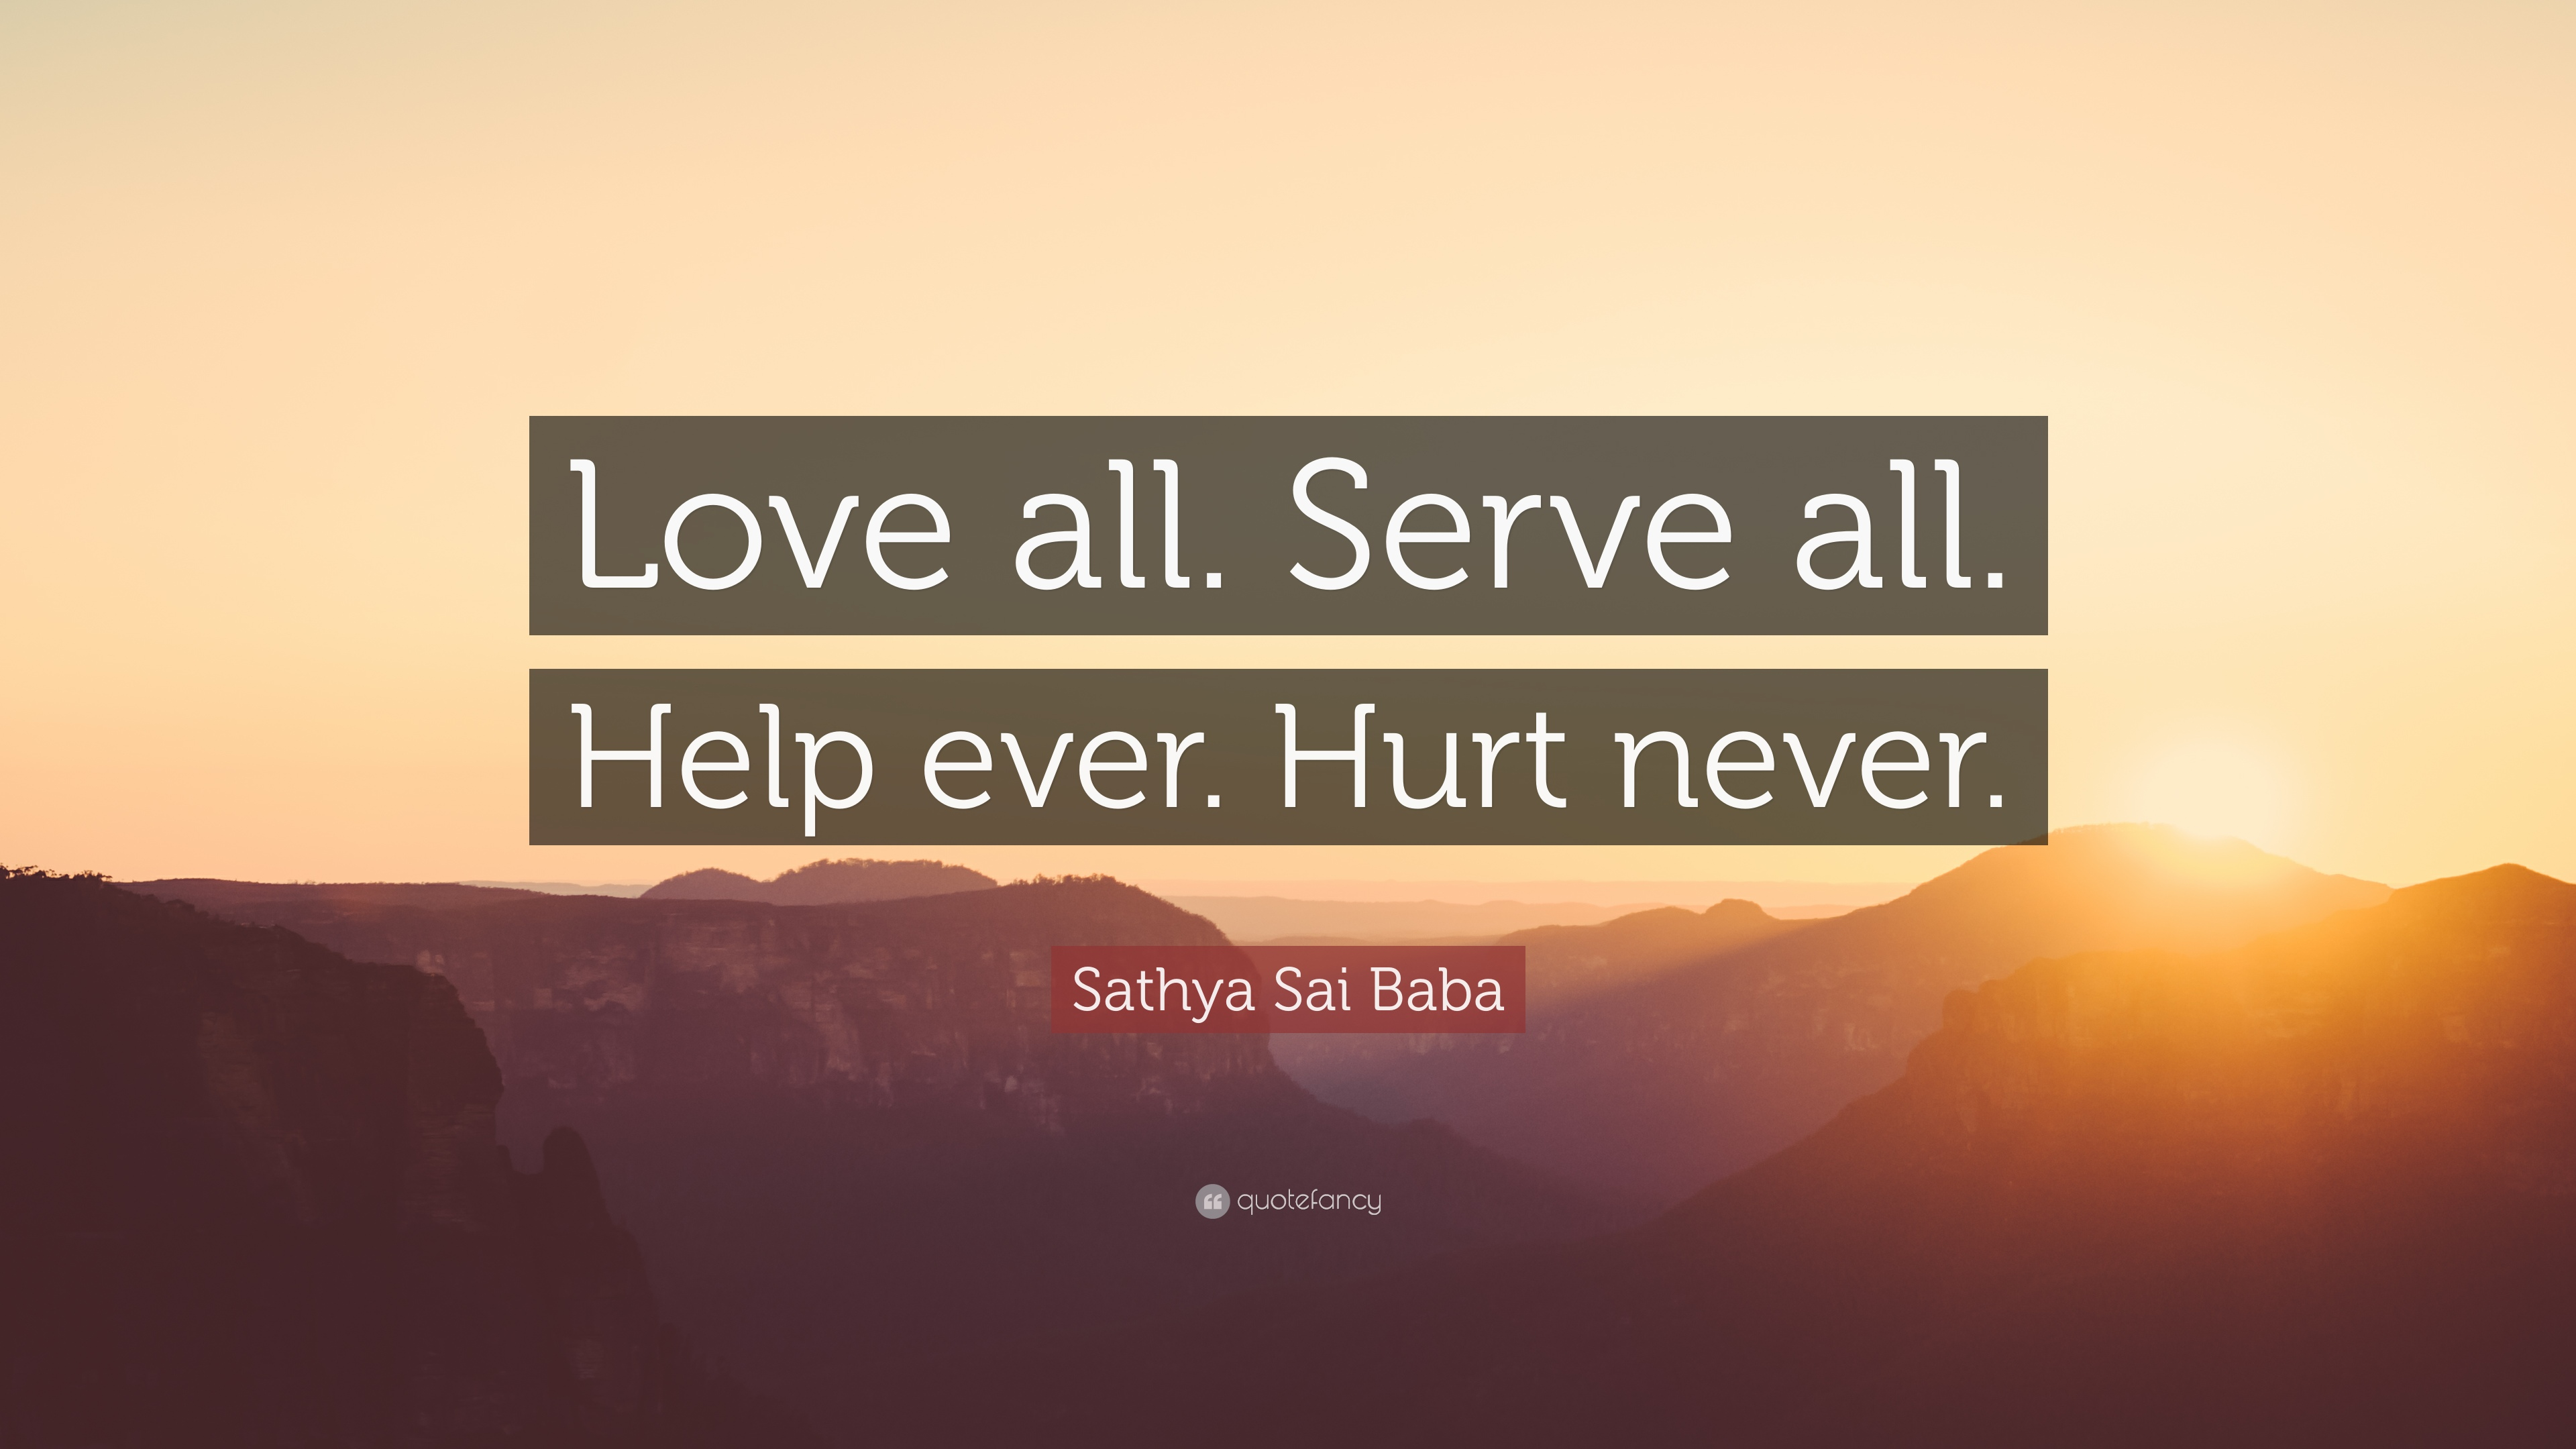 Laughing Wallpaper With Quotes Sathya Sai Baba Quote Love All Serve All Help Ever